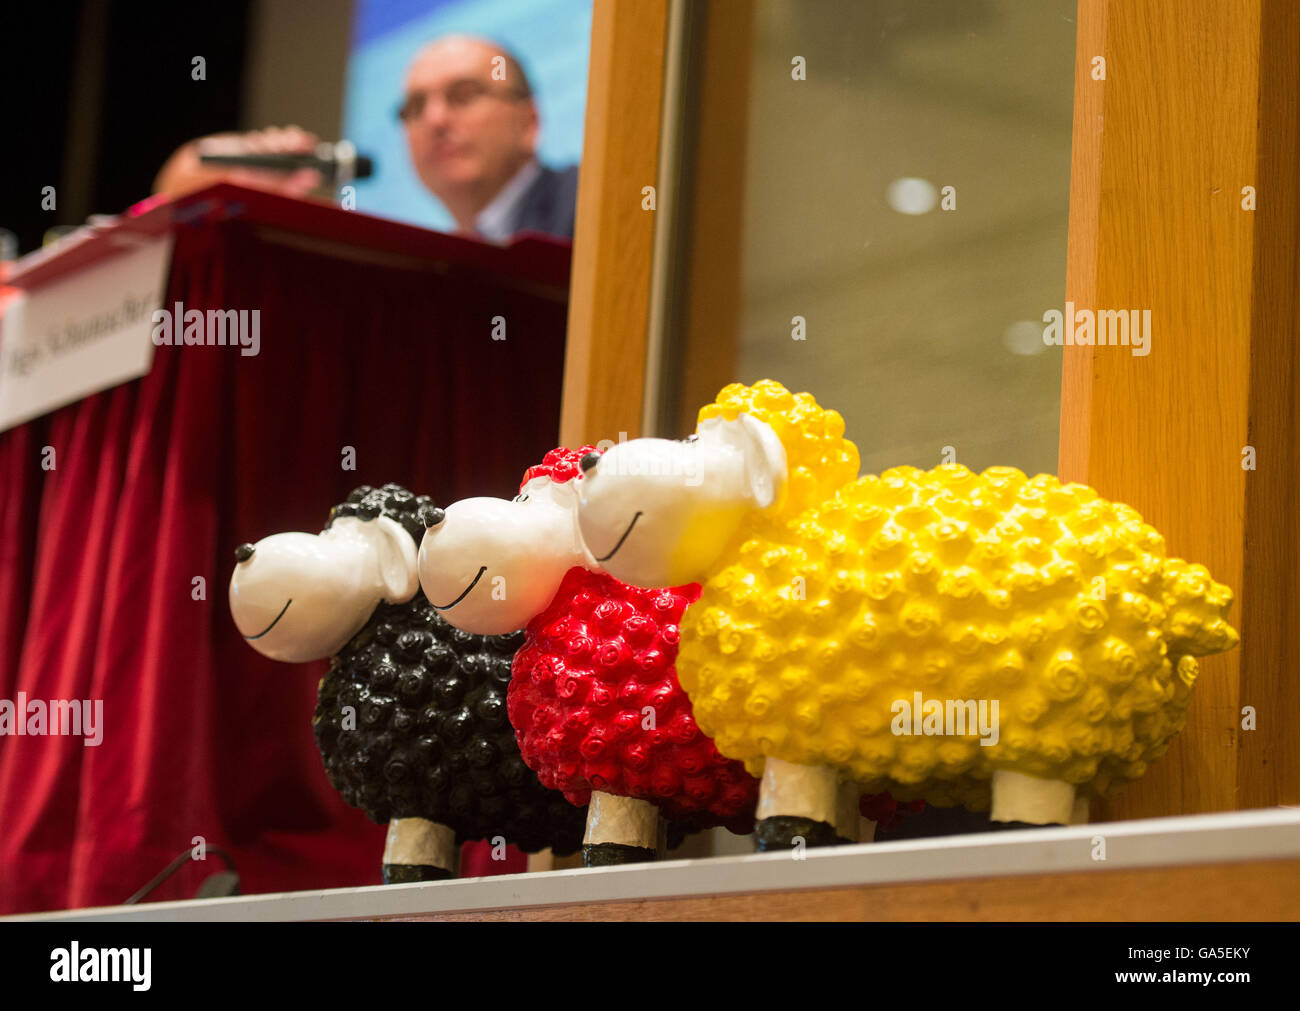 Werl, Germany. 3rd July, 2016. Three toy sheep coloured in black, red and yellow, resembling the German national - Stock Image